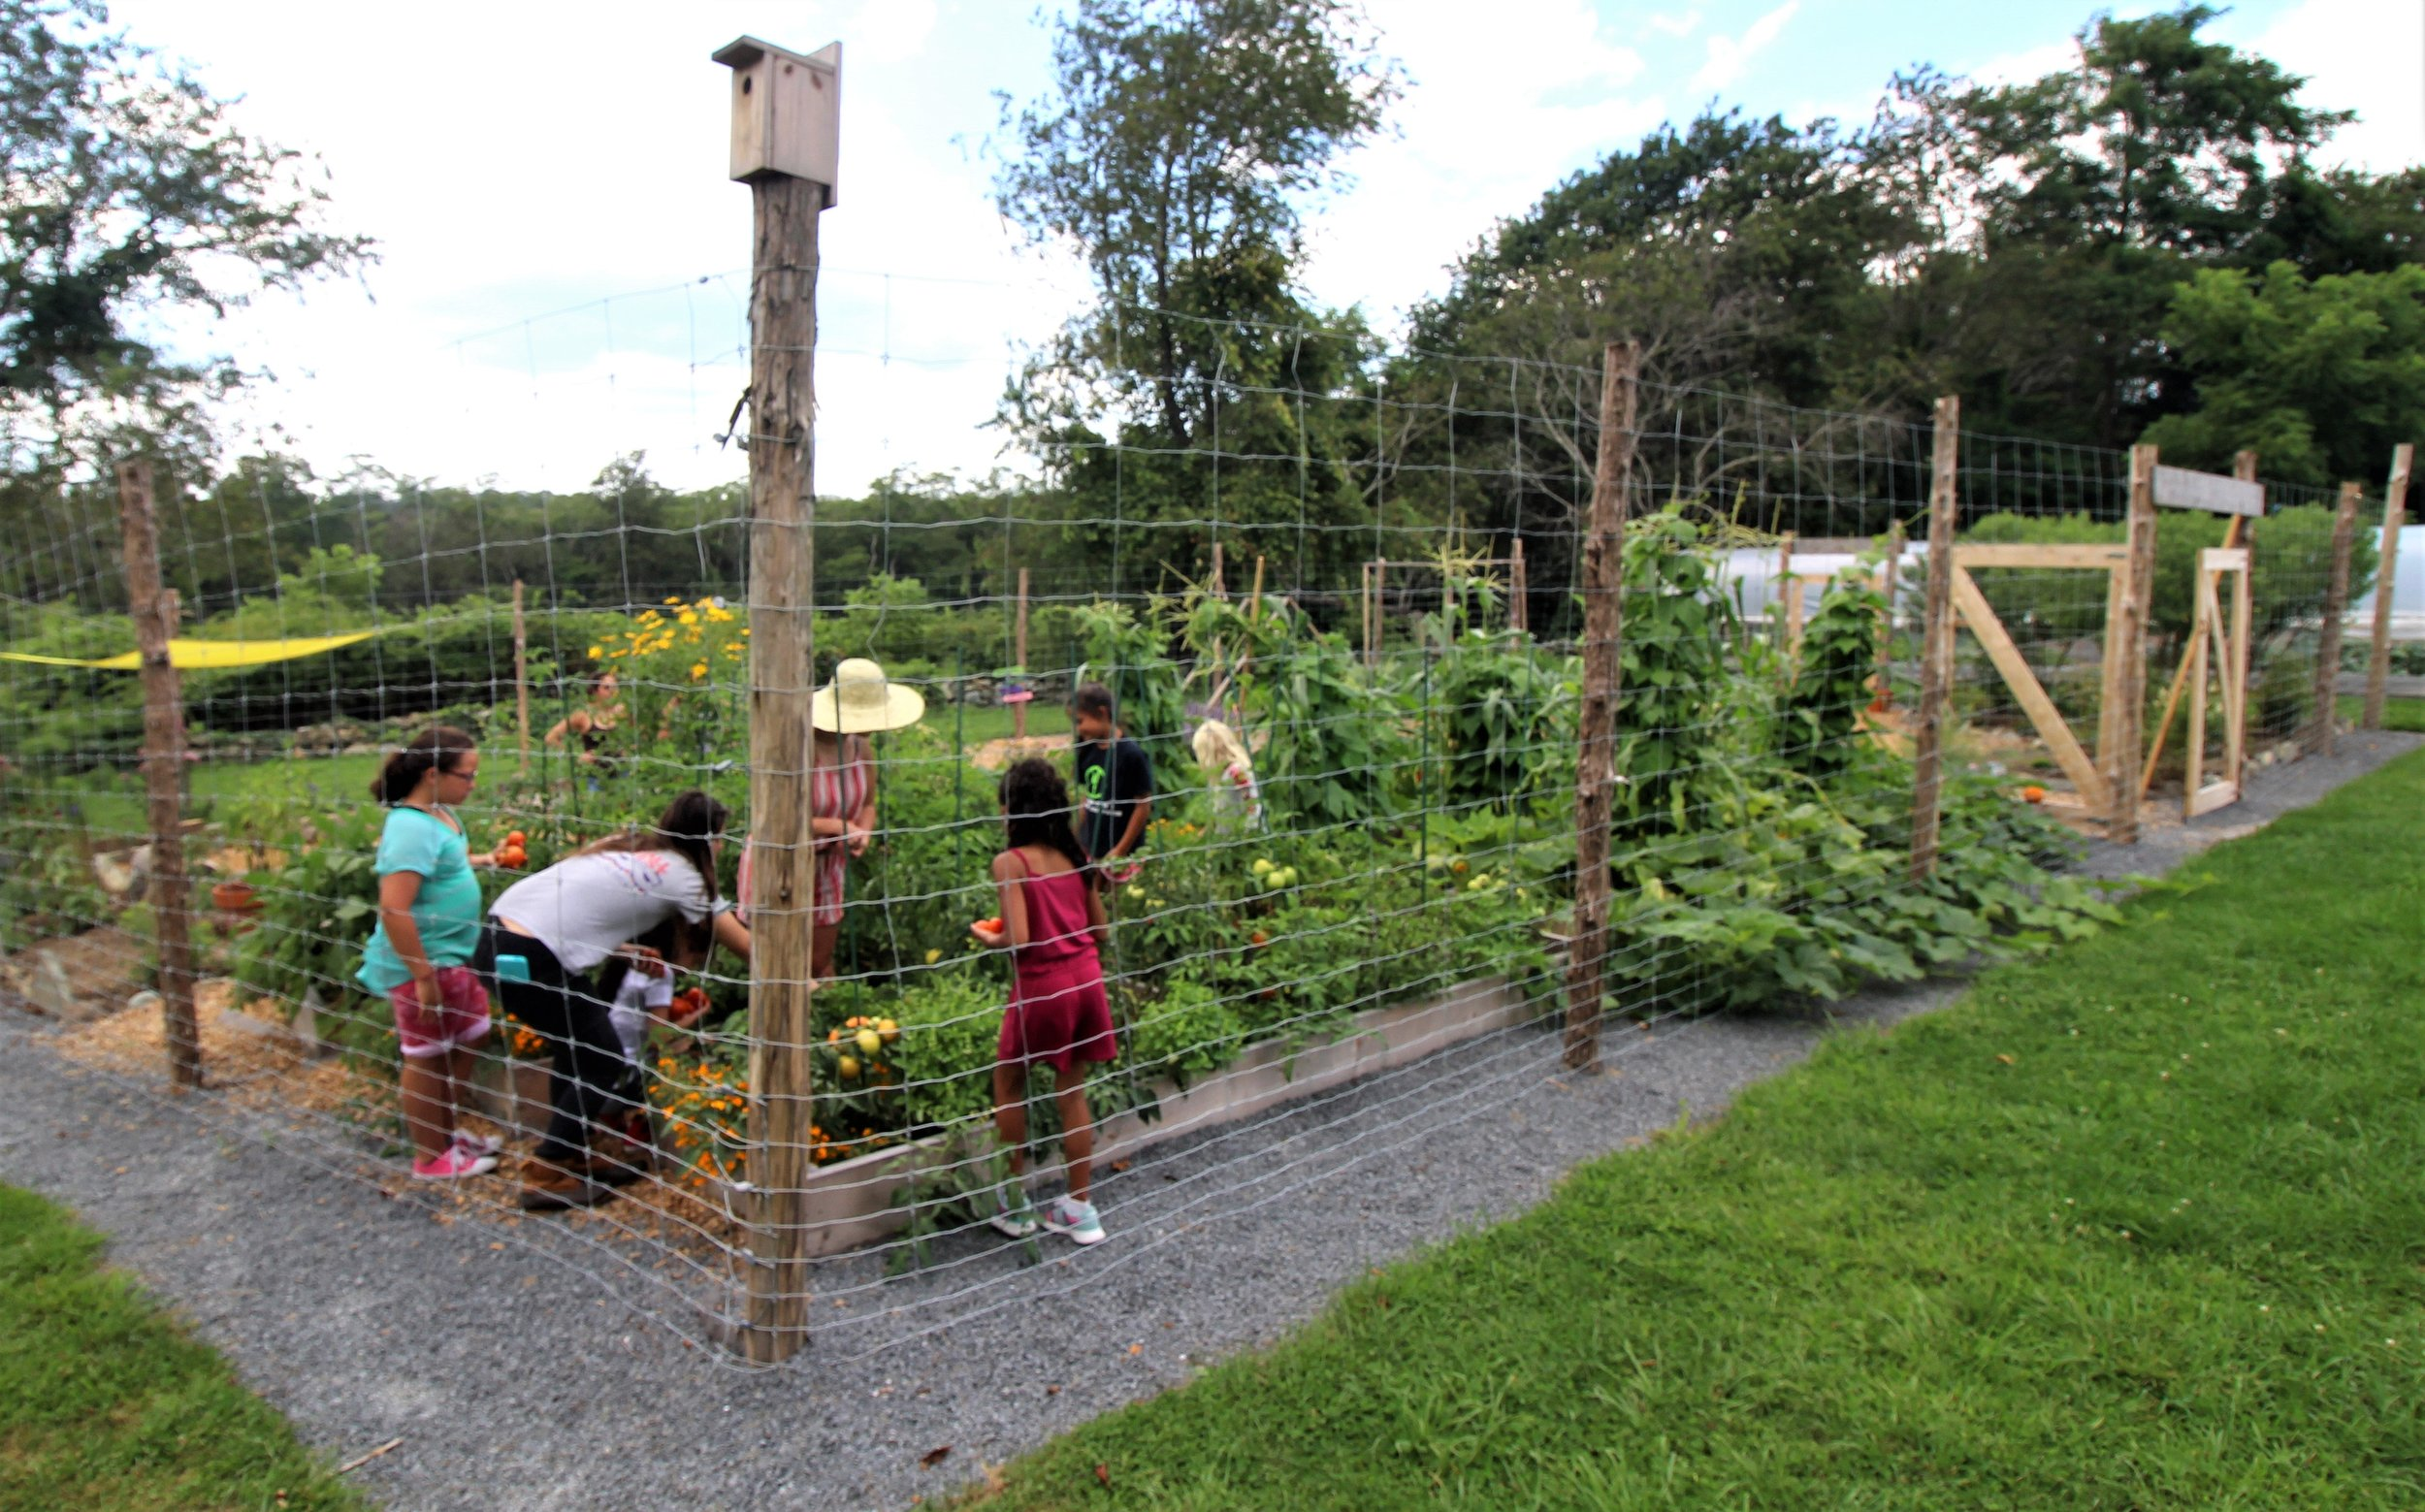 Dr. martin luther king Jr. Community center students picking tomatoes